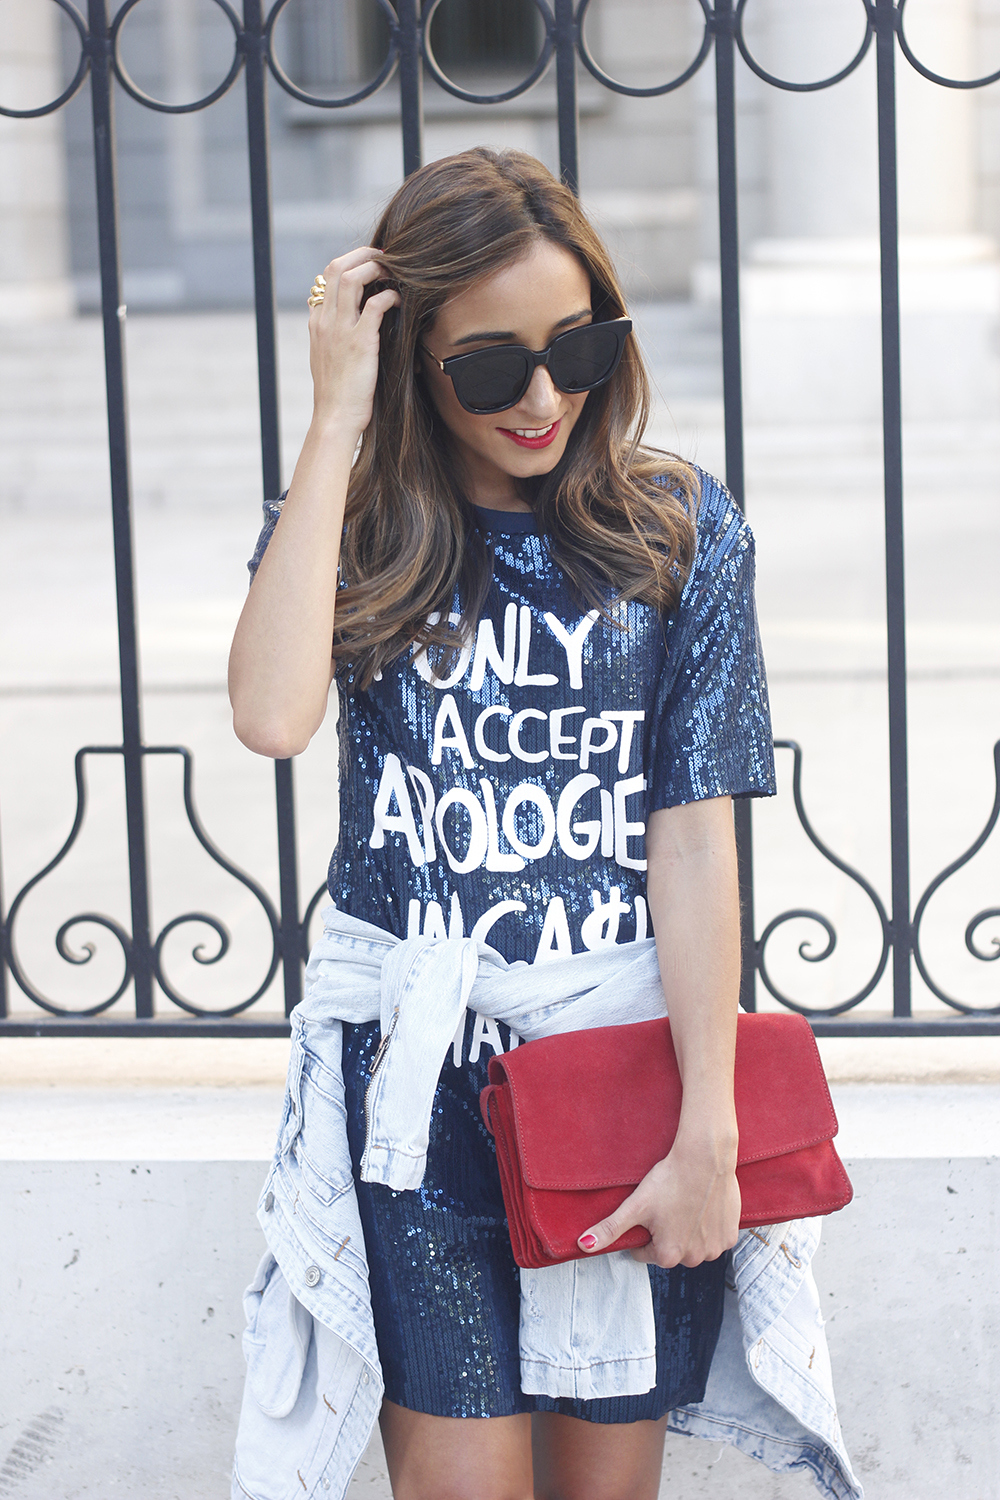 blue sequined dress nude heels denim jacket sunnies red bag accessories style fashion outfit09